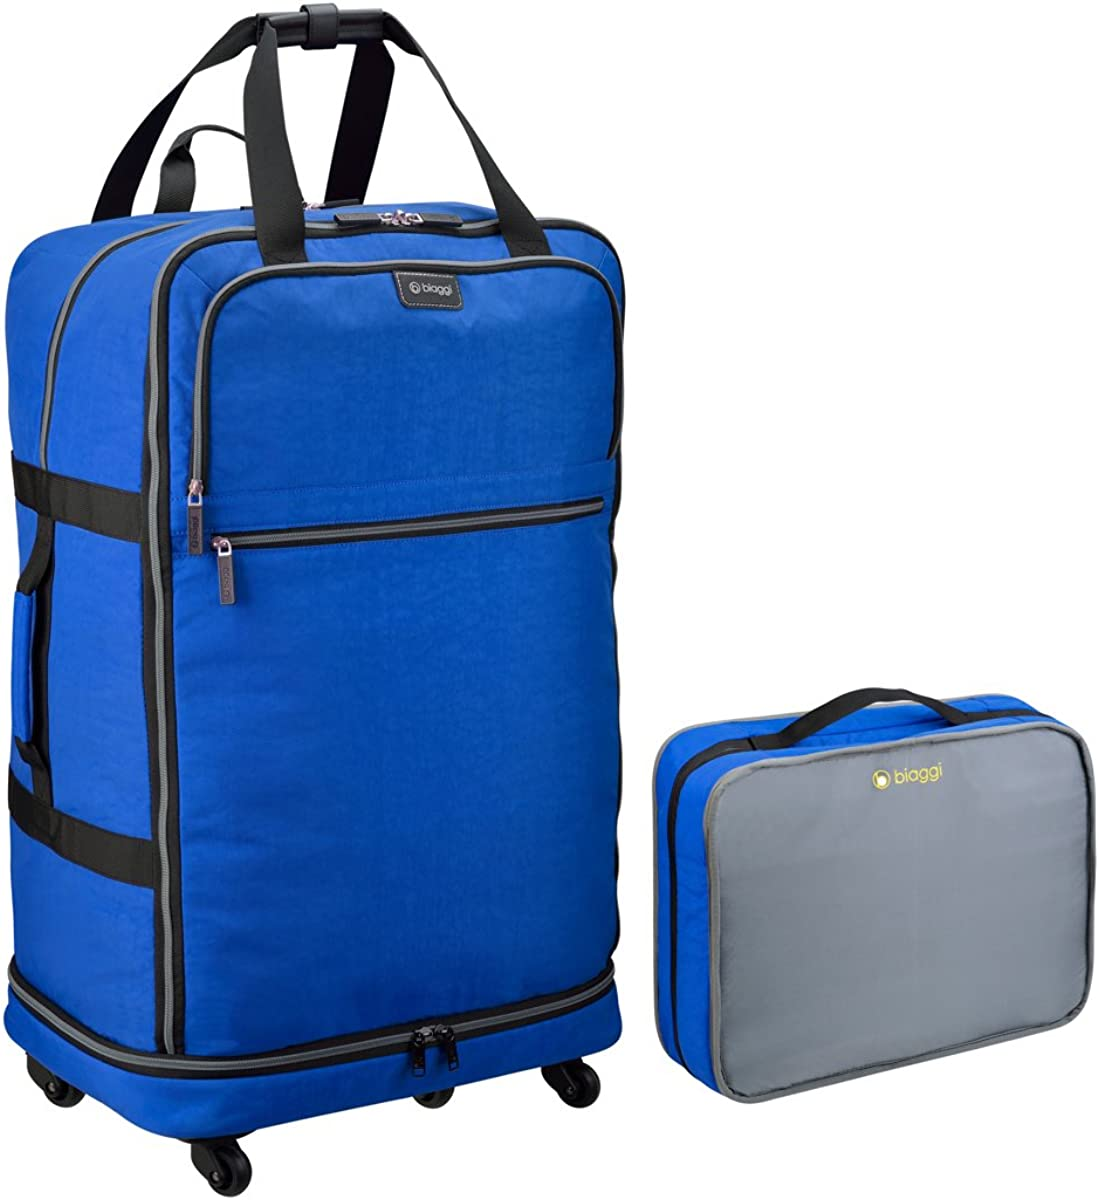 Biaggi Zipsak Micro-Fold Spinner Suitcase- 31-Inch Luggage - As Seen on Shark Tank - Cobalt Blue